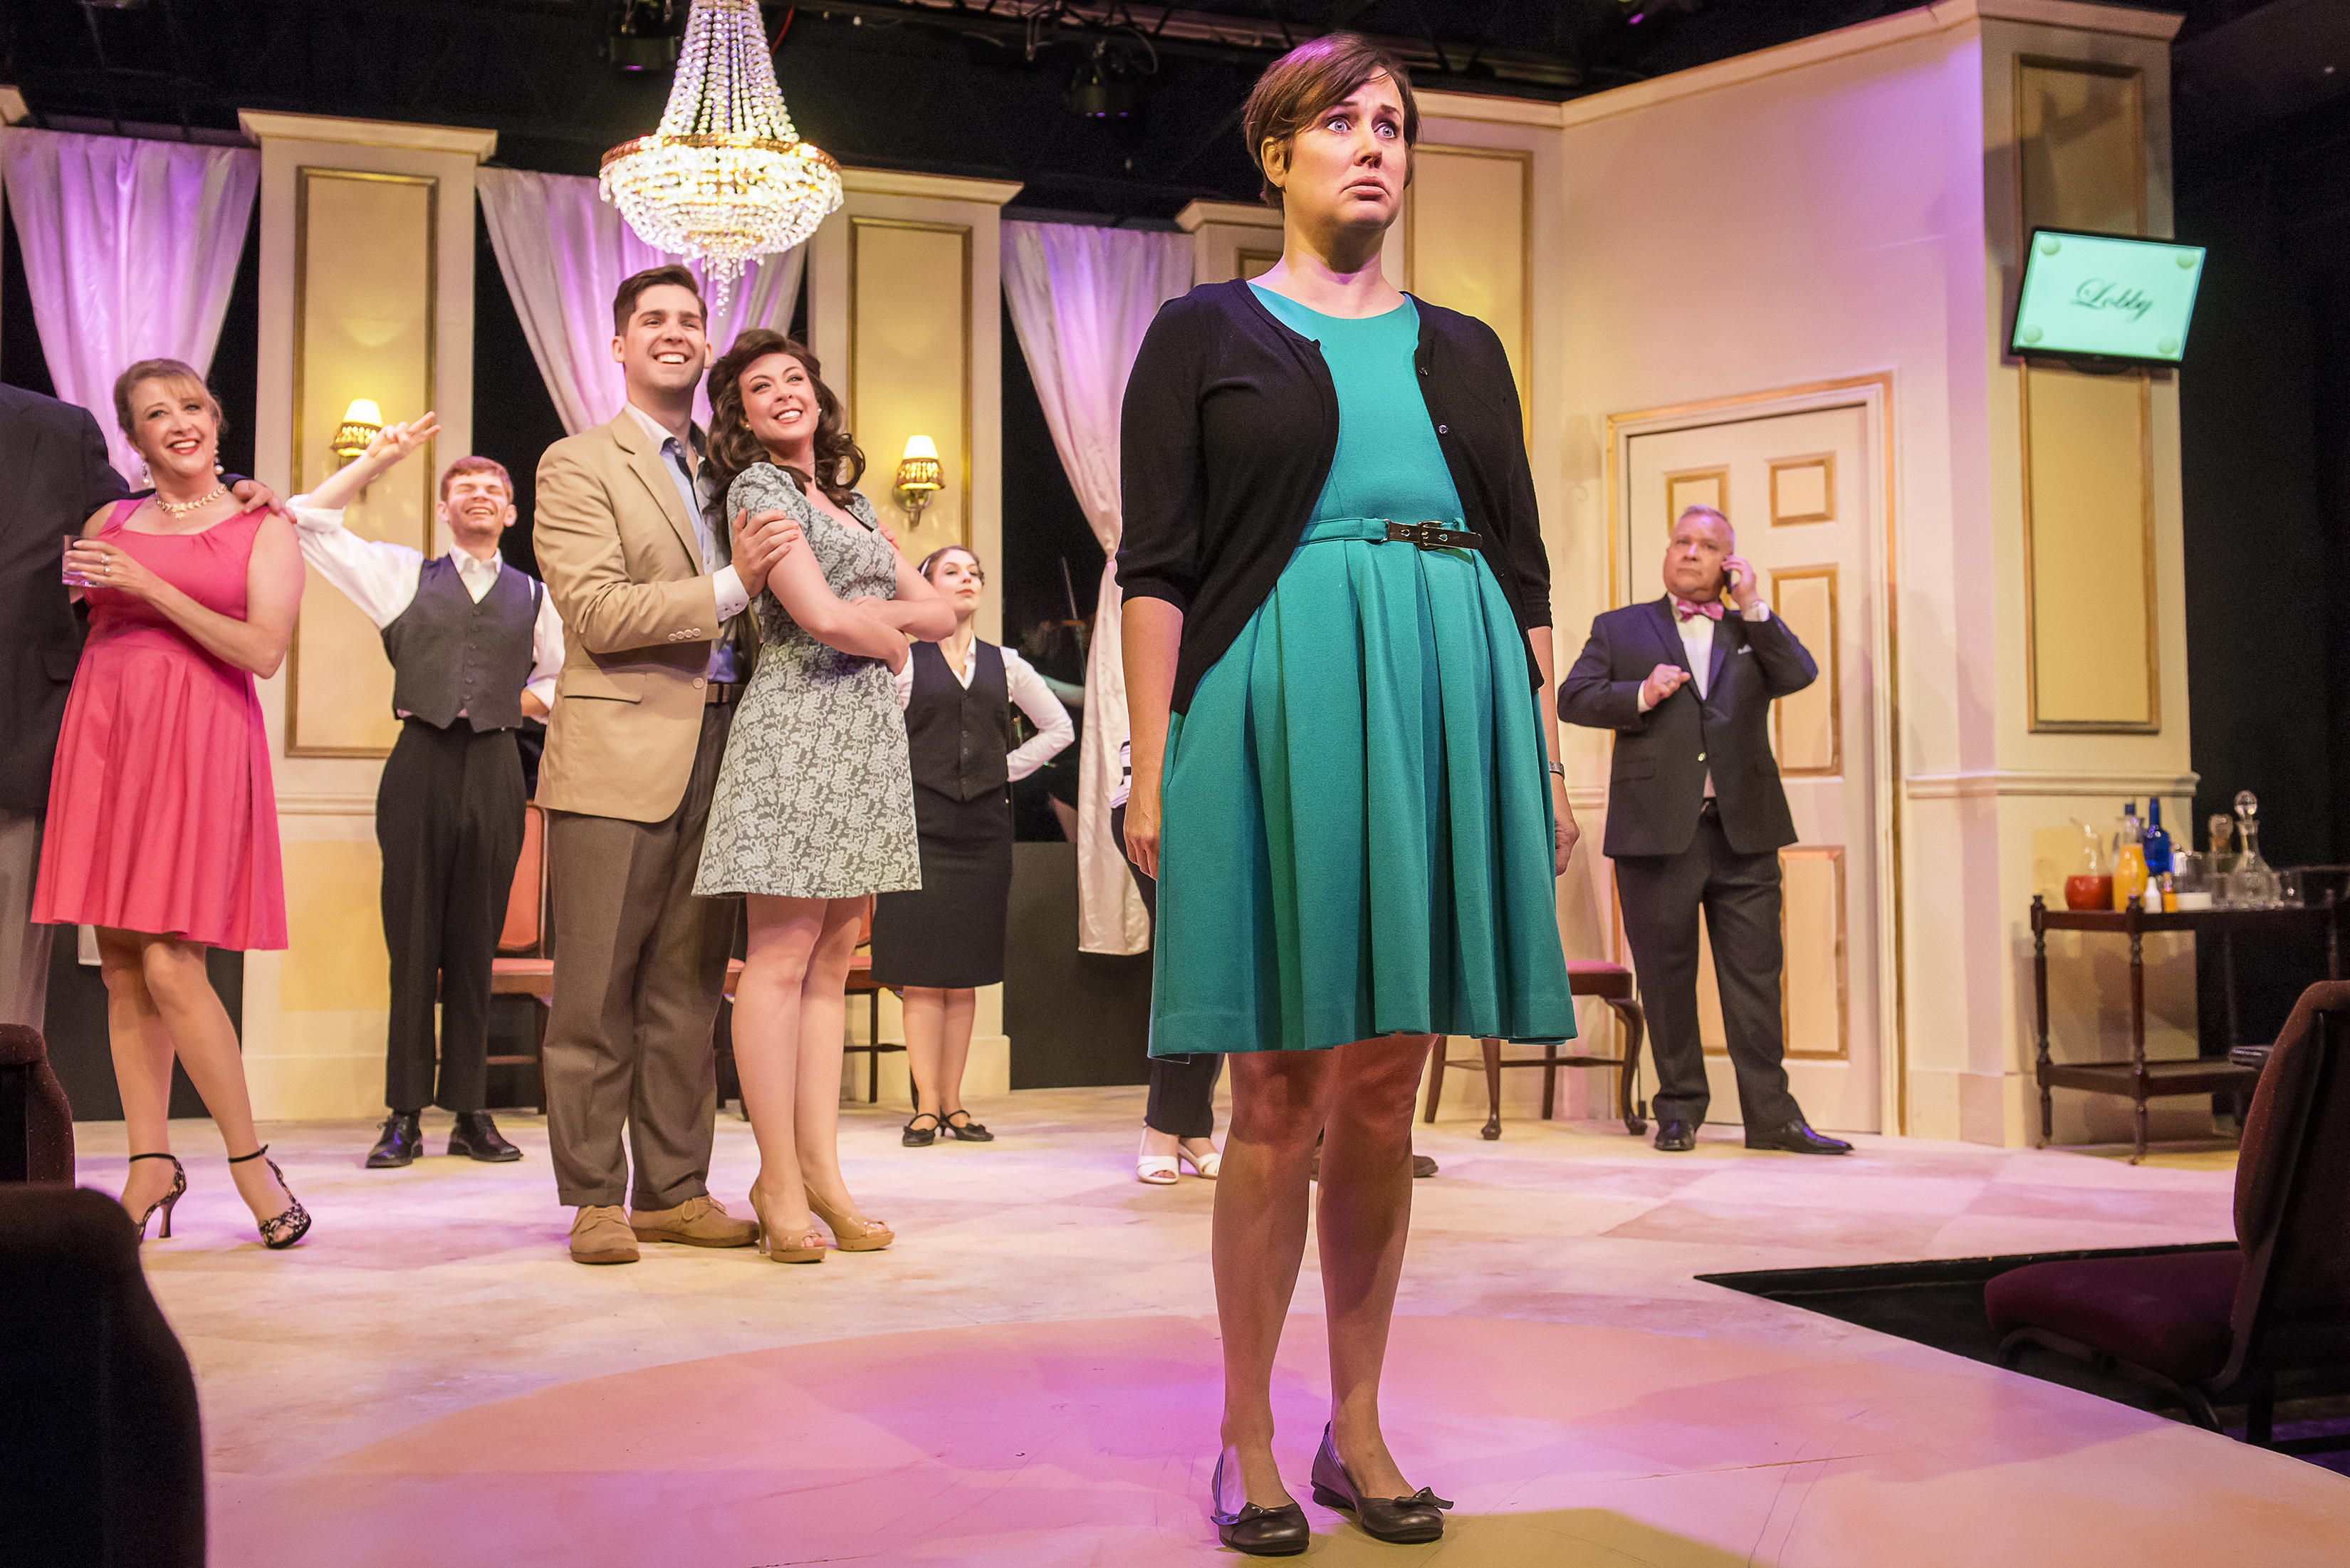 BWW Review: IT SHOULDA BEEN YOU at Richmond Triangle Players, a Feel-Good Wedding With a Twist